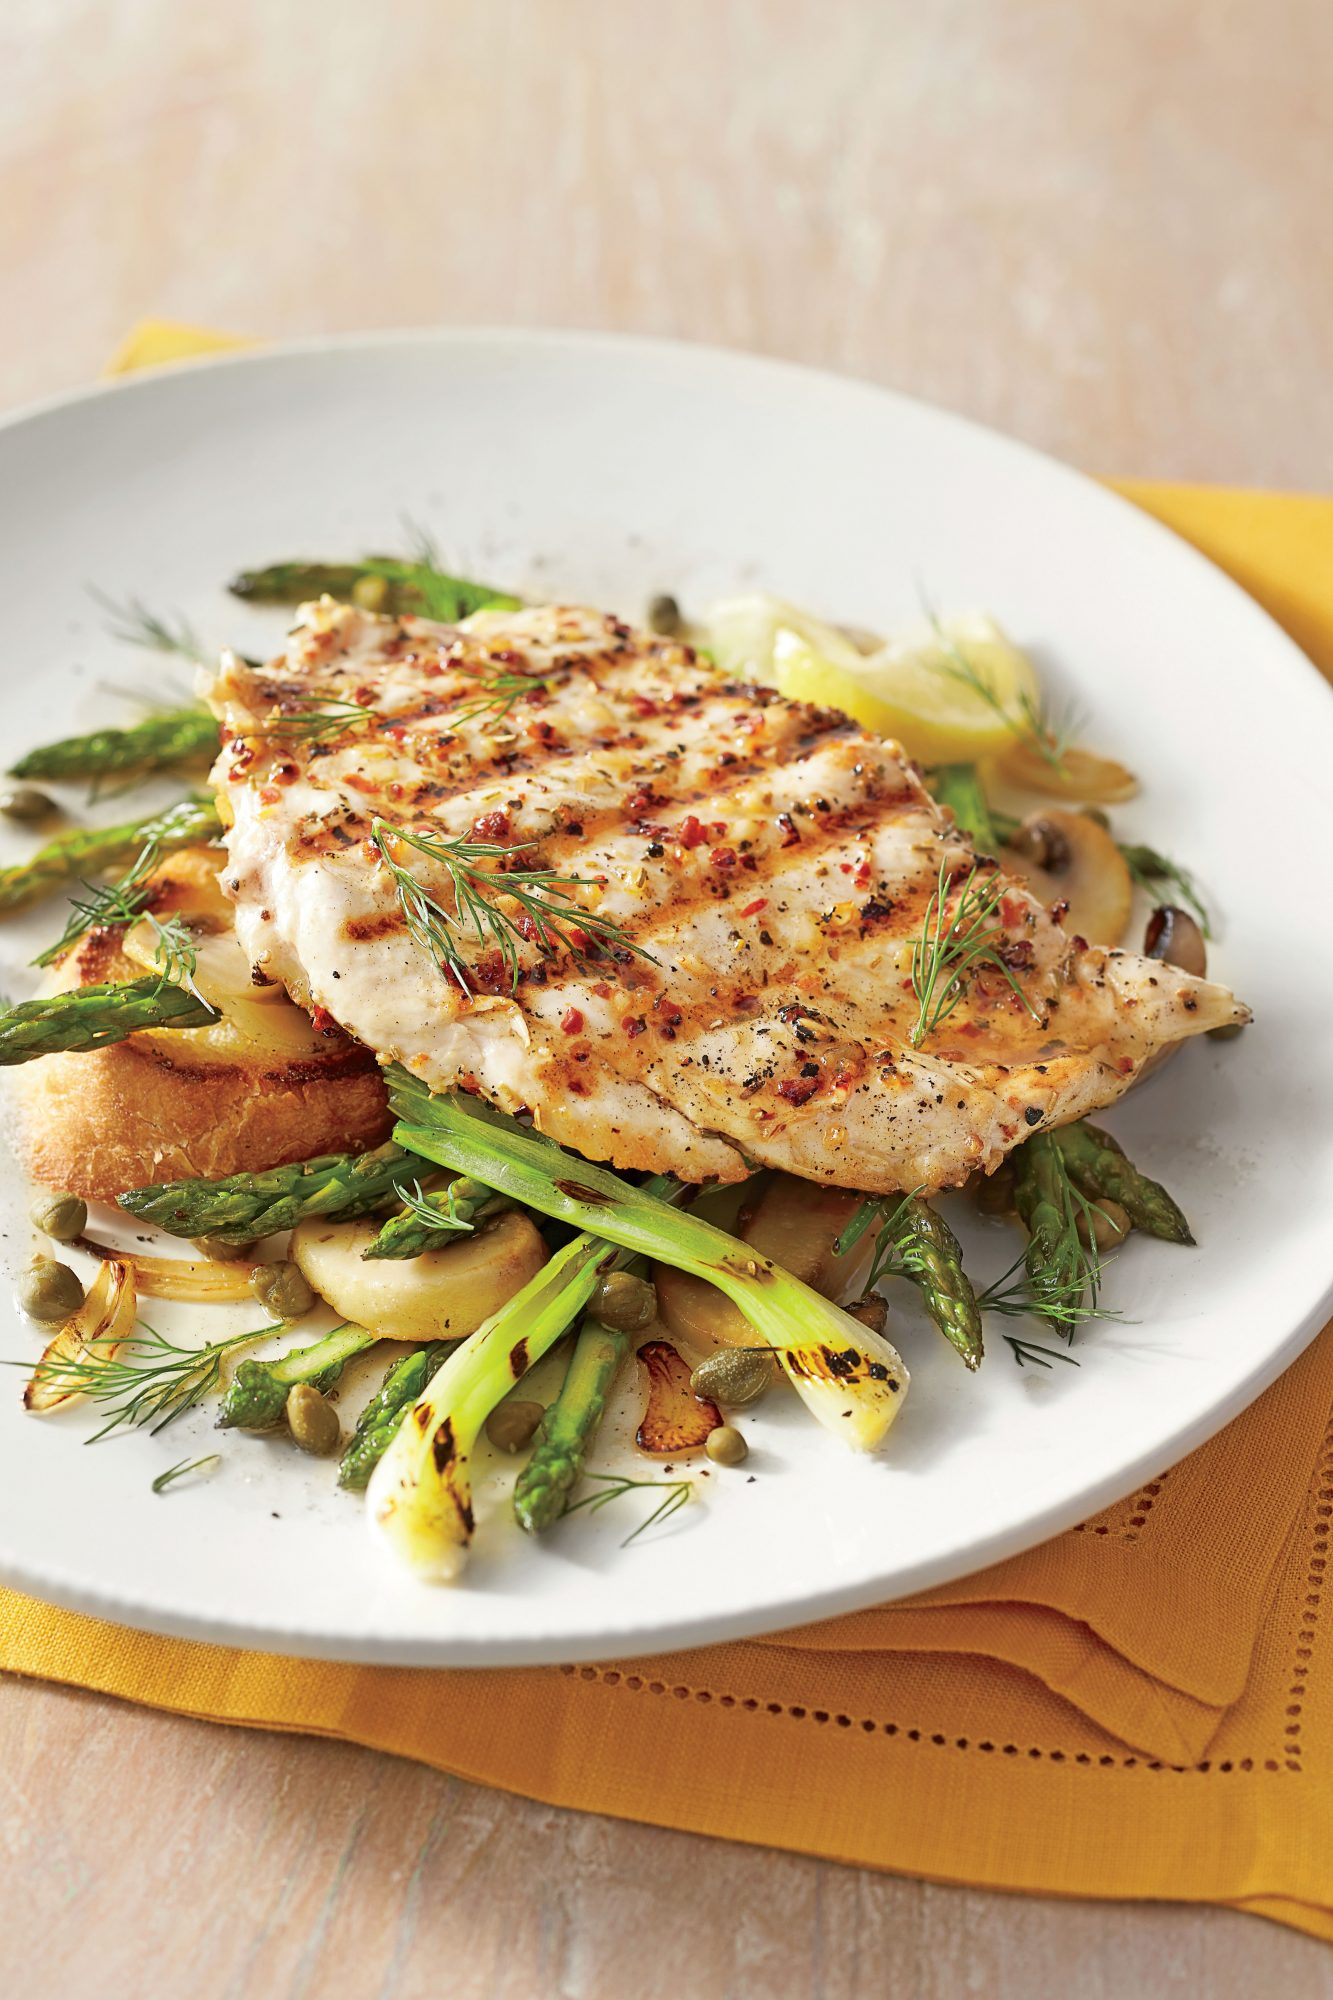 Chicken Breasts with Mushrooms and Asparagus